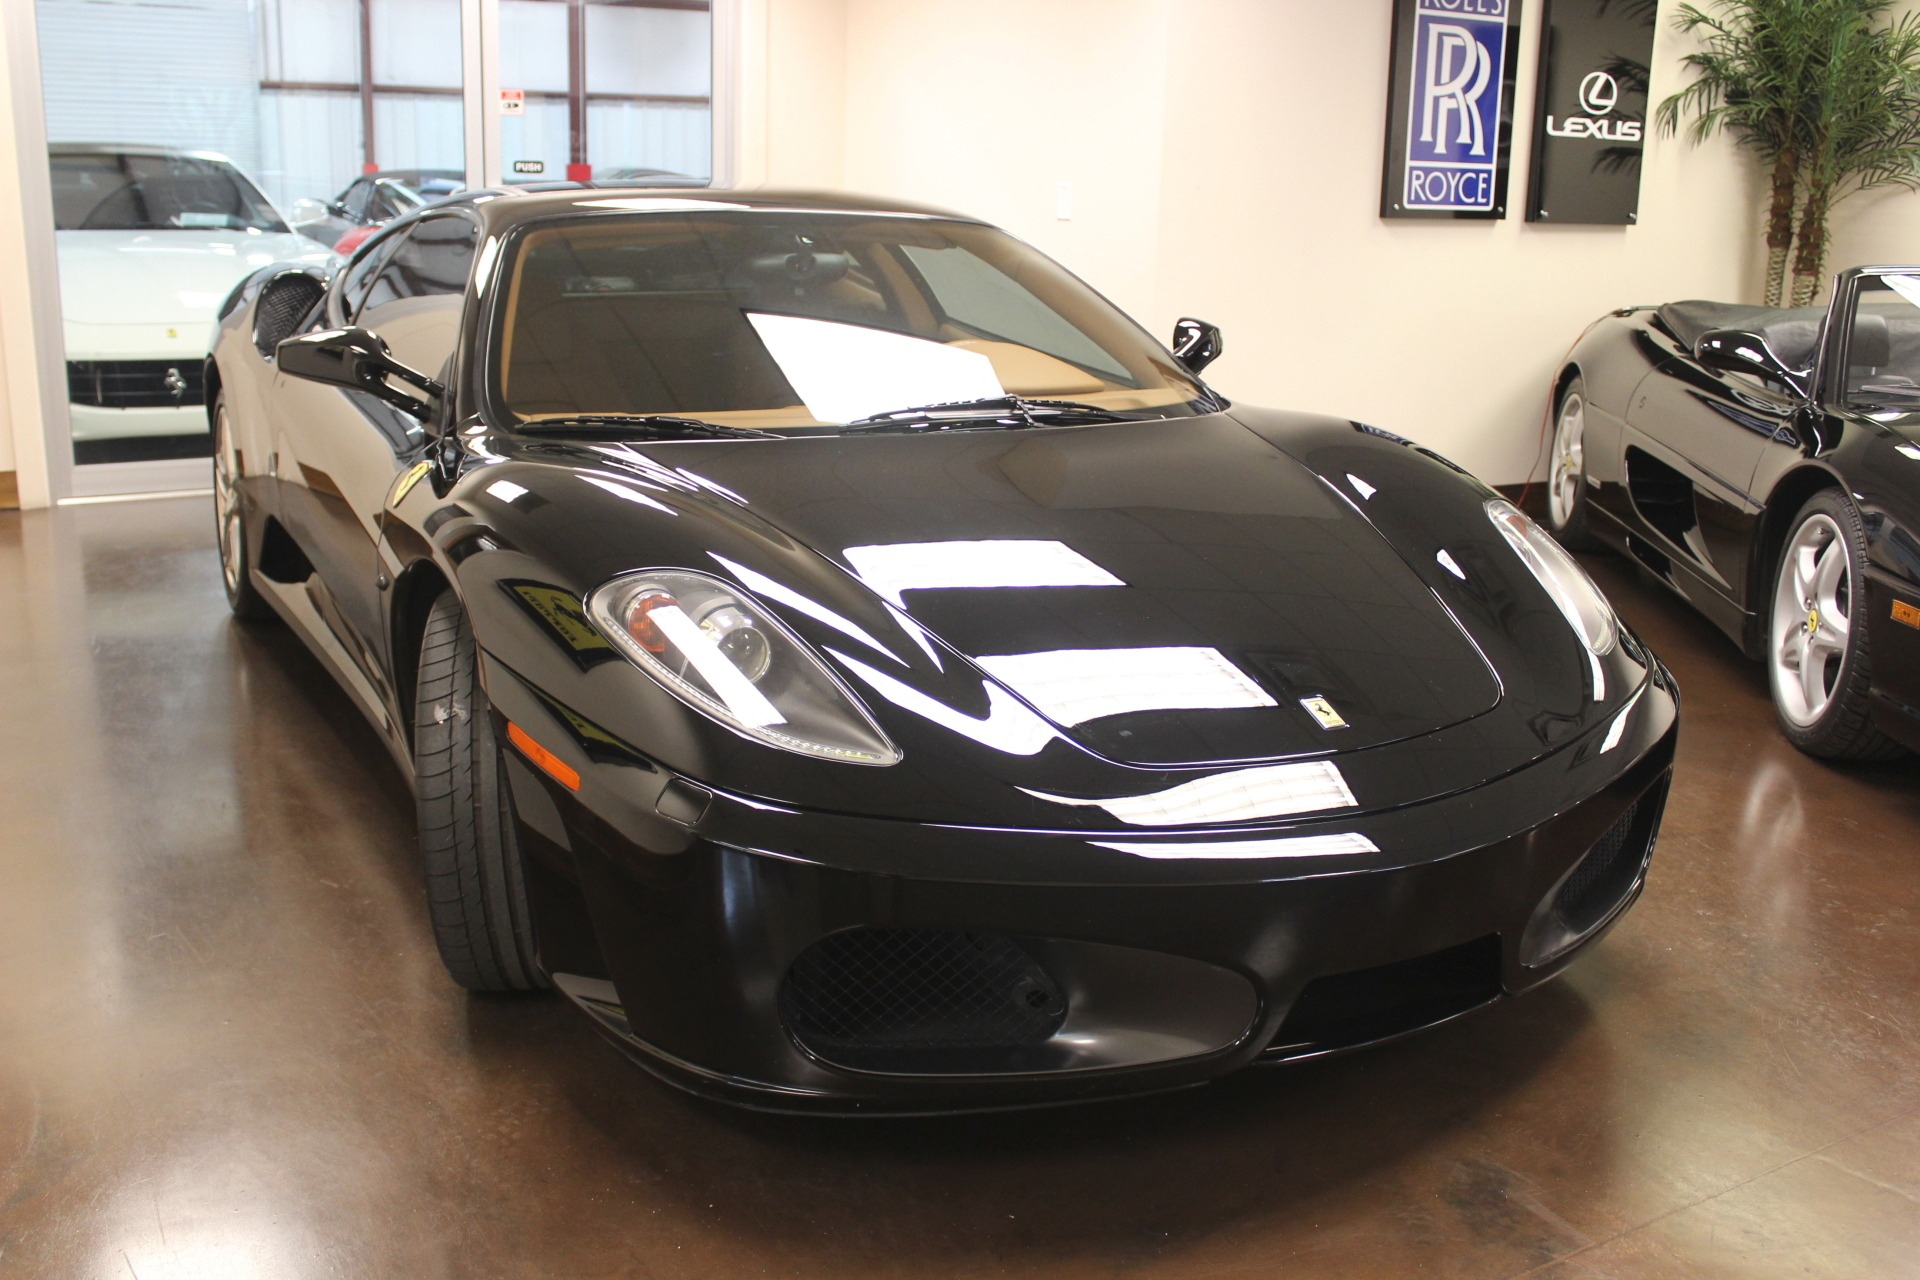 Used 2005 Ferrari F430 Stock P3538 Ultra Luxury Car From